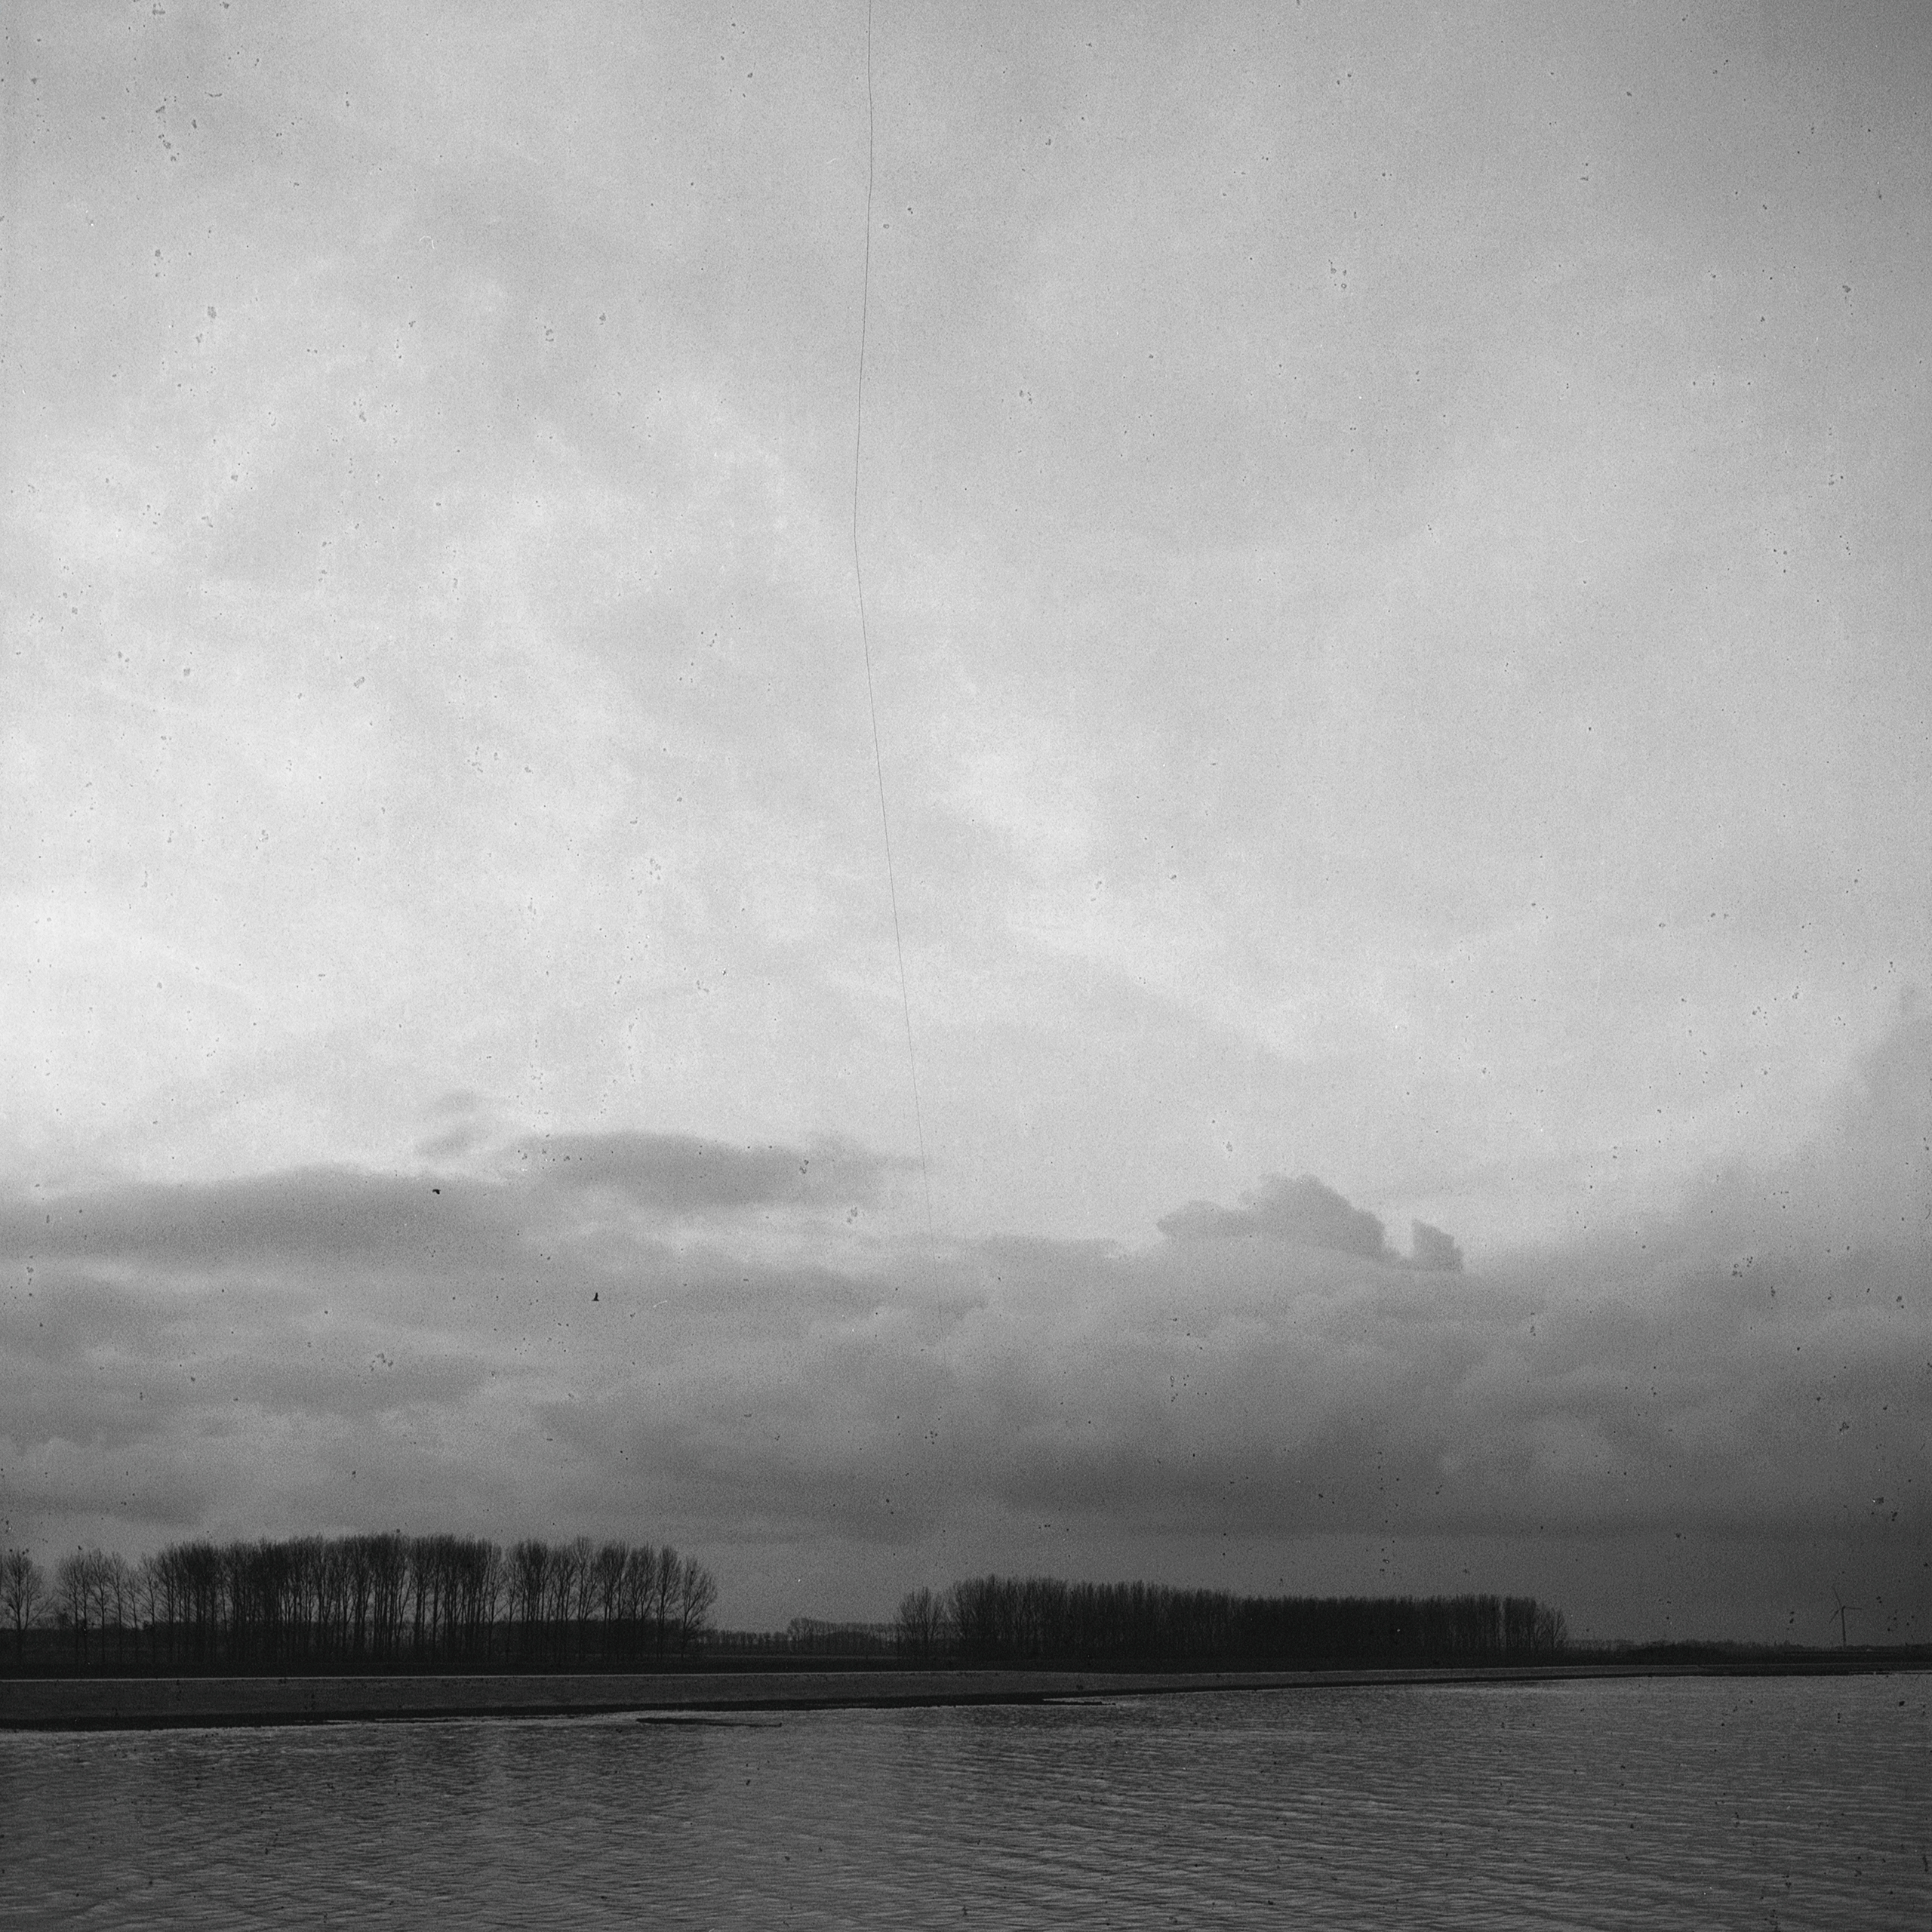 Land-water-trees - photography, filmphotography - glennvanvredegem | ello